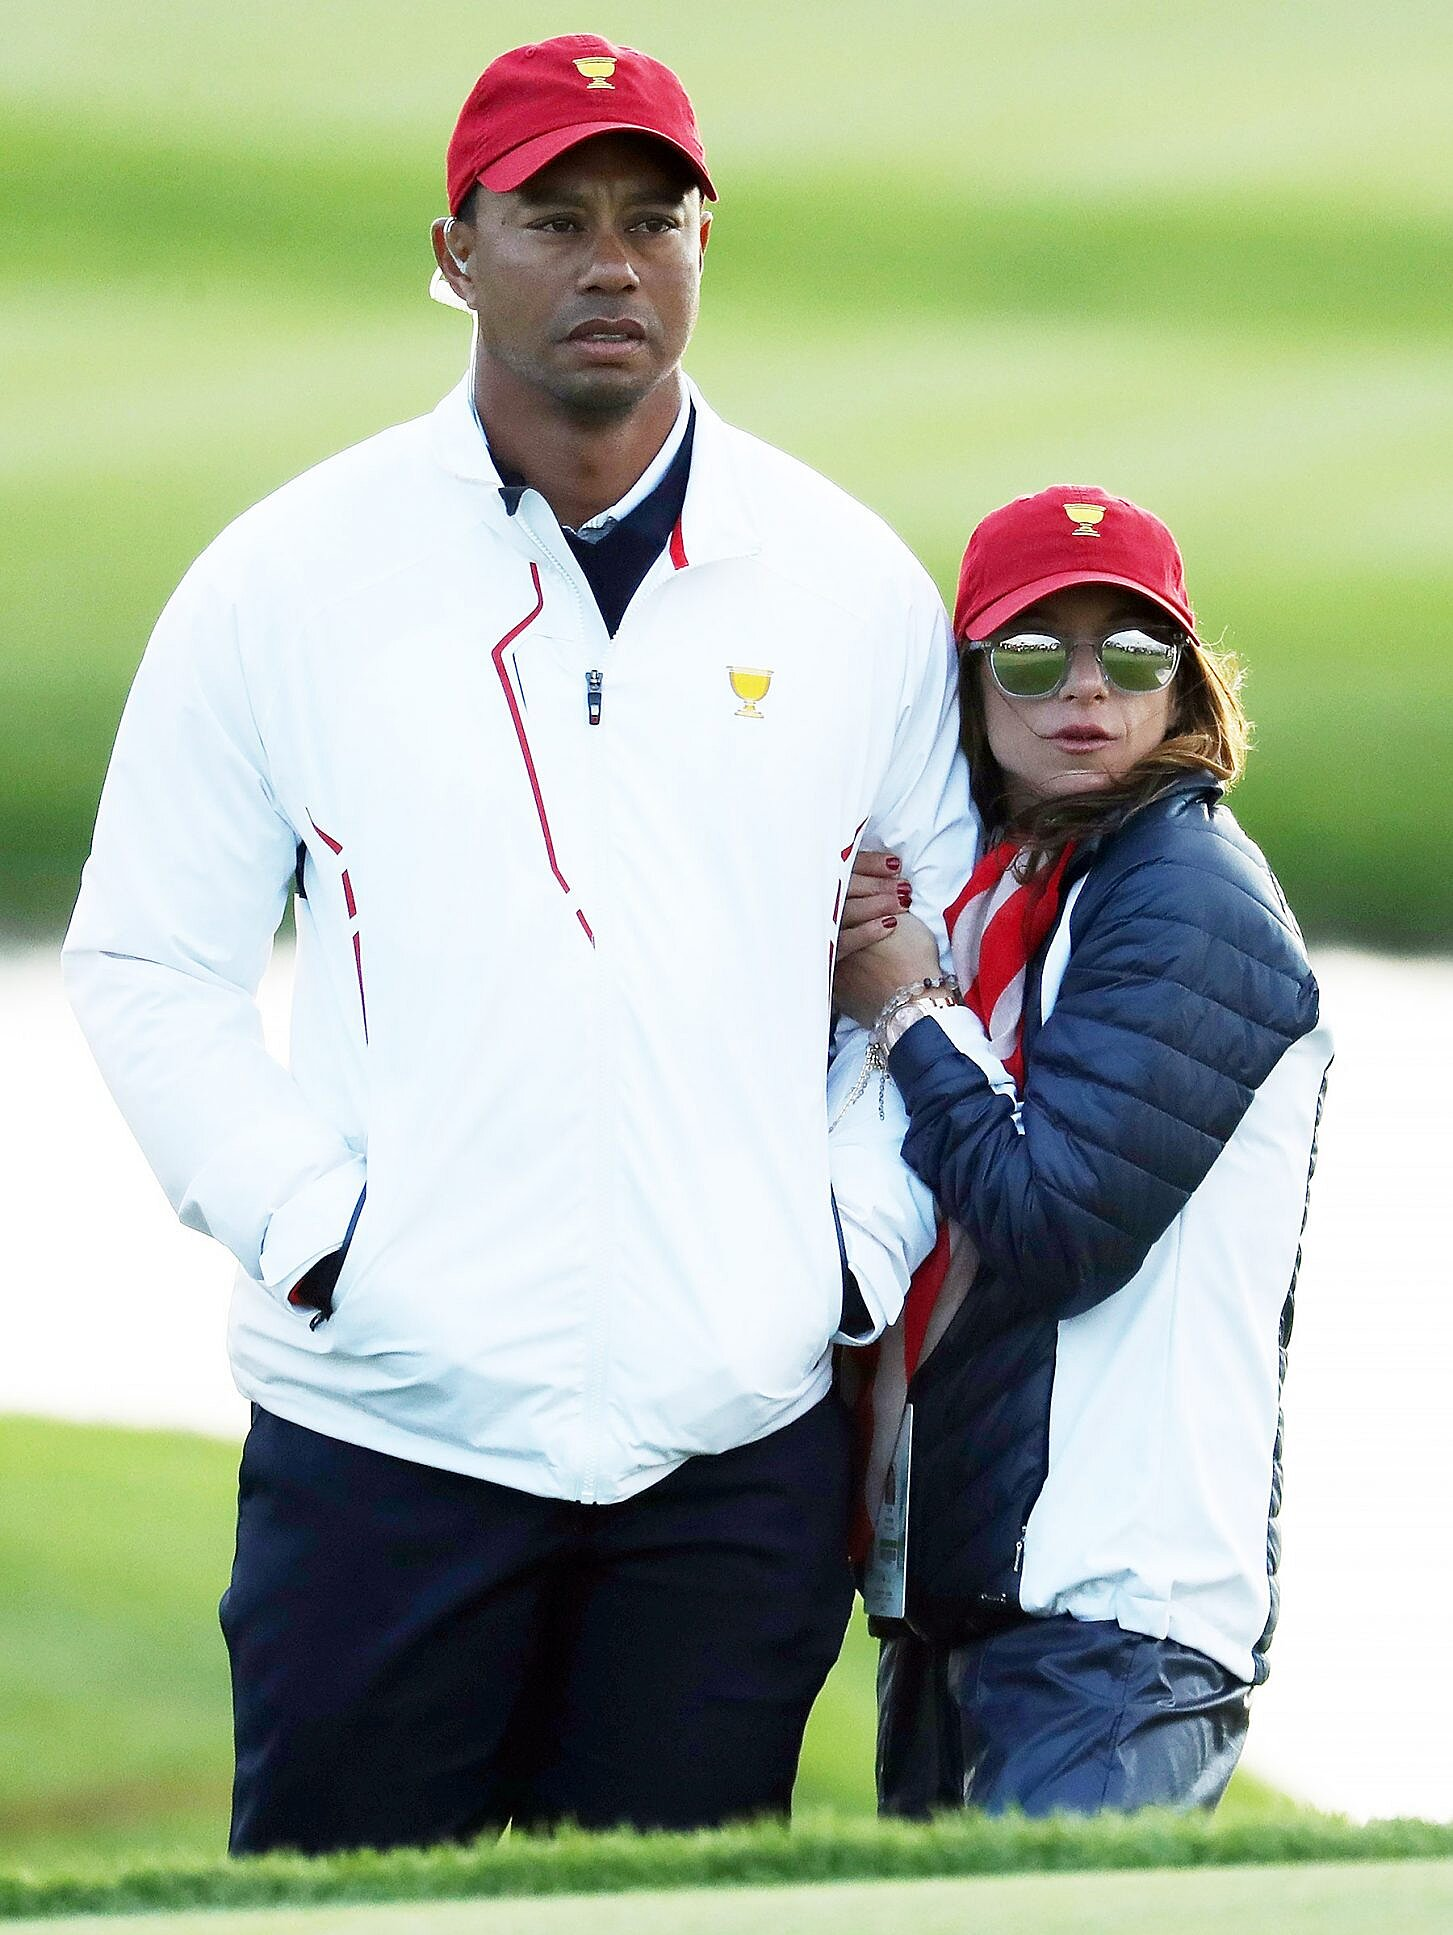 Is tiger today who dating Tiger Woods'